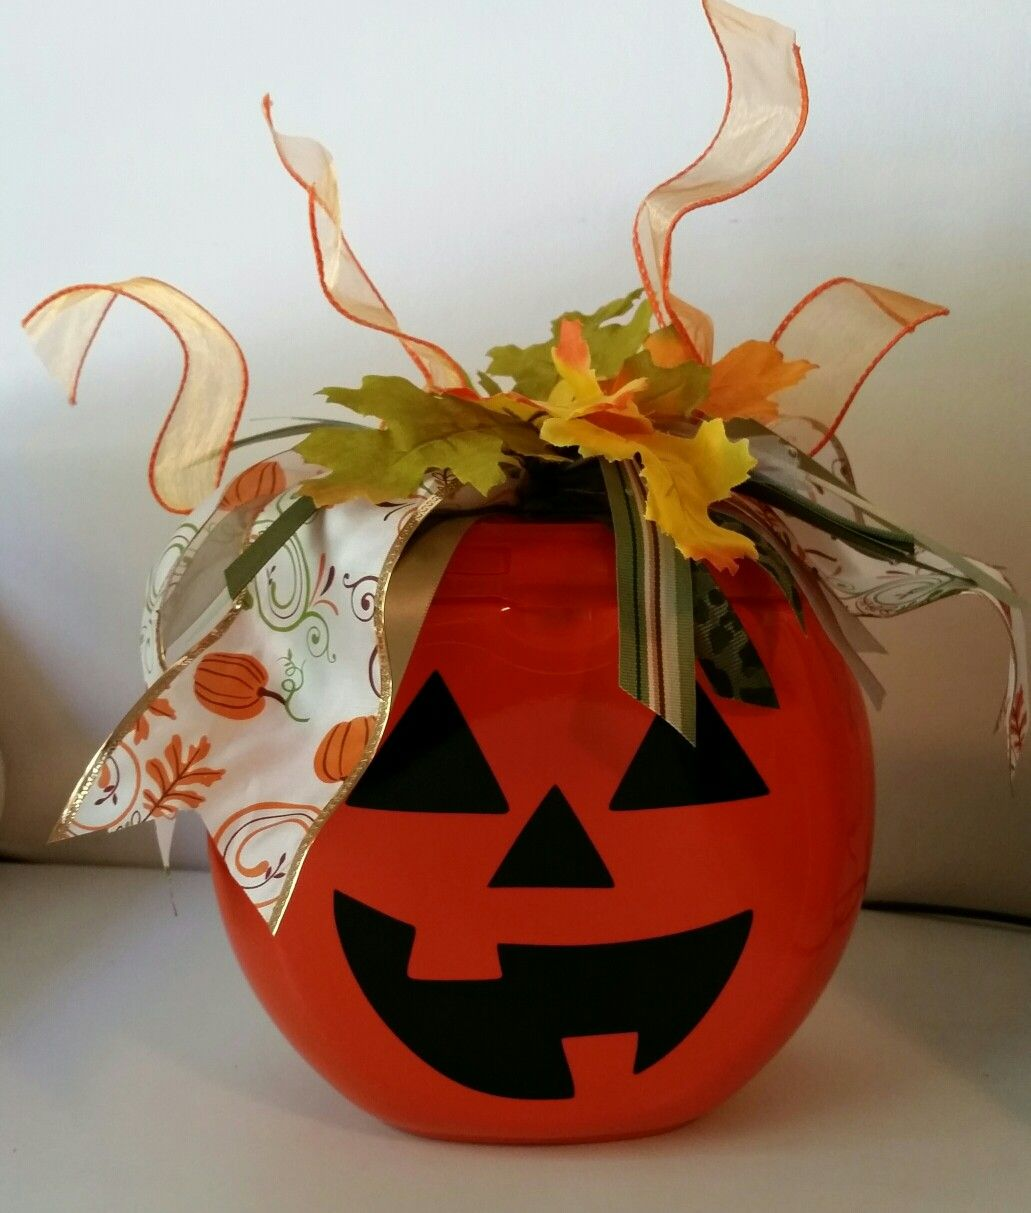 Tide detergent container Jack O Lantern. #tidepodscontainercrafts